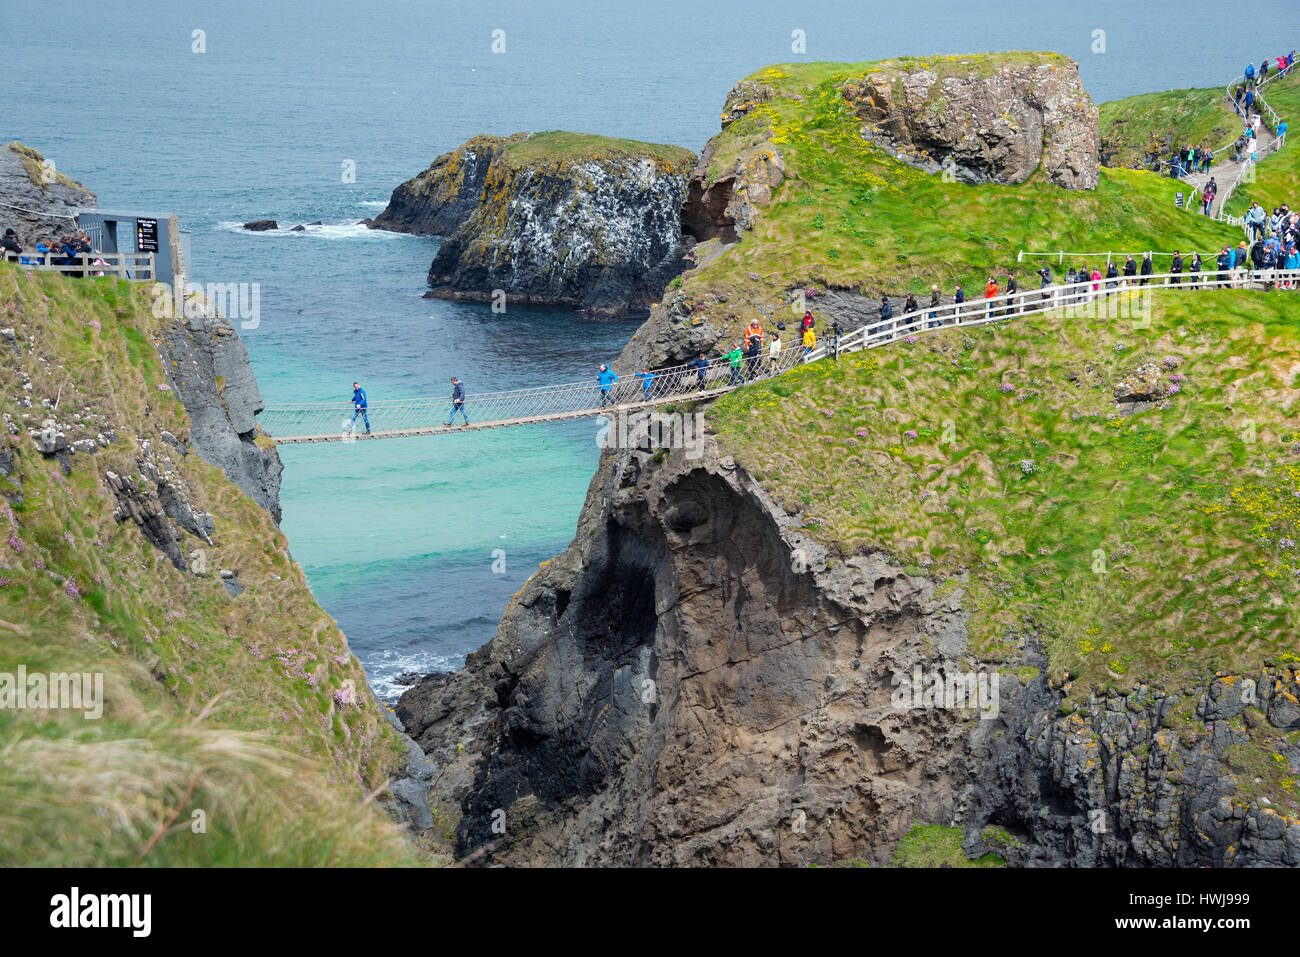 Hanging bridge, Carrick-a-Rede Rope Bridge, Island Carrick-a-Rede, County Antrim, Northern Ireland, Great Britain - Stock Image